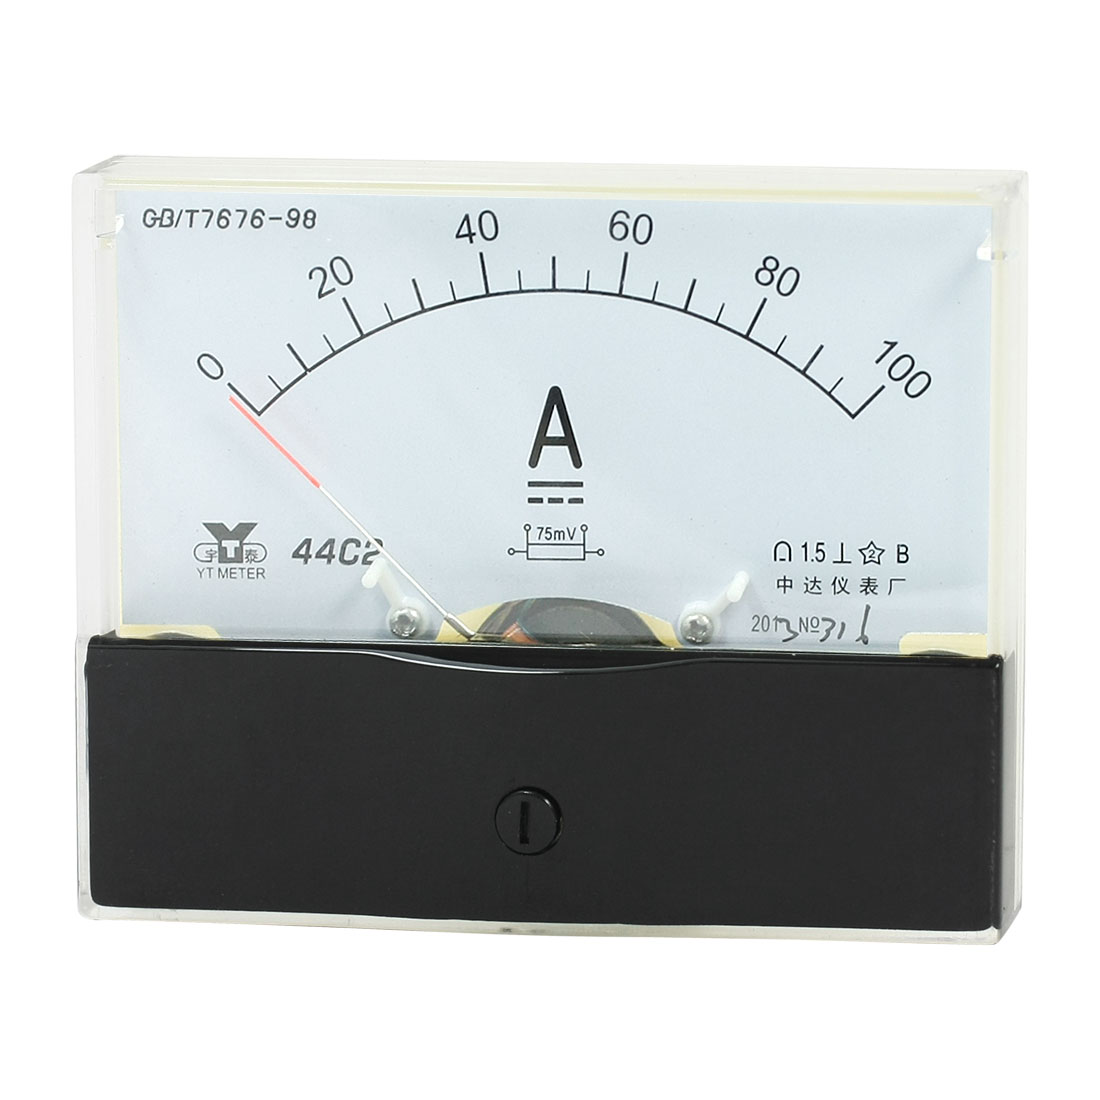 Rectangle Measurement Tool Analog Panel Ammeter Gauge DC 0 - 100A Measuring Range 44C2